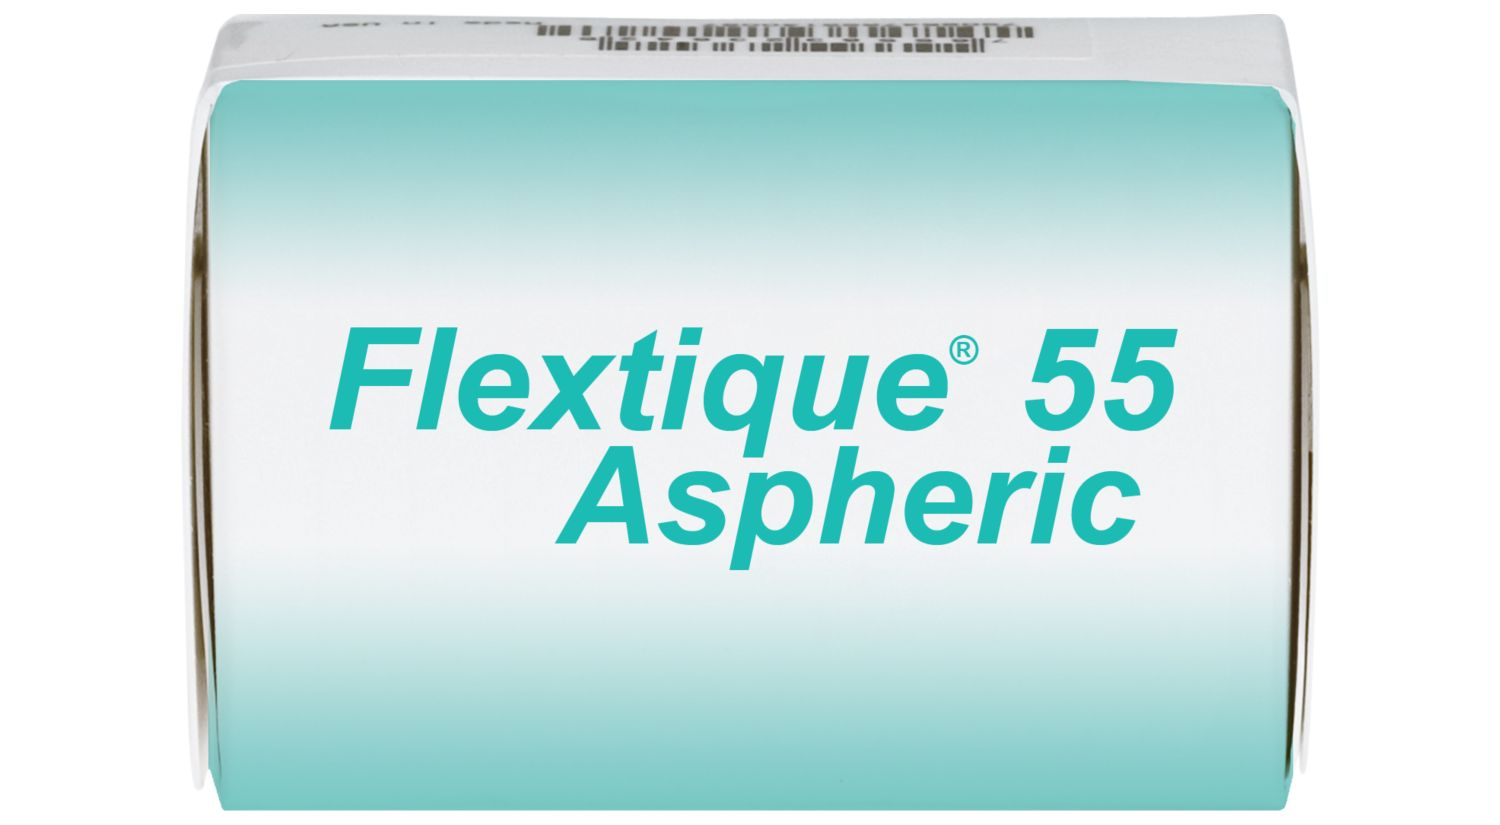 Flextique 55 Aspheric